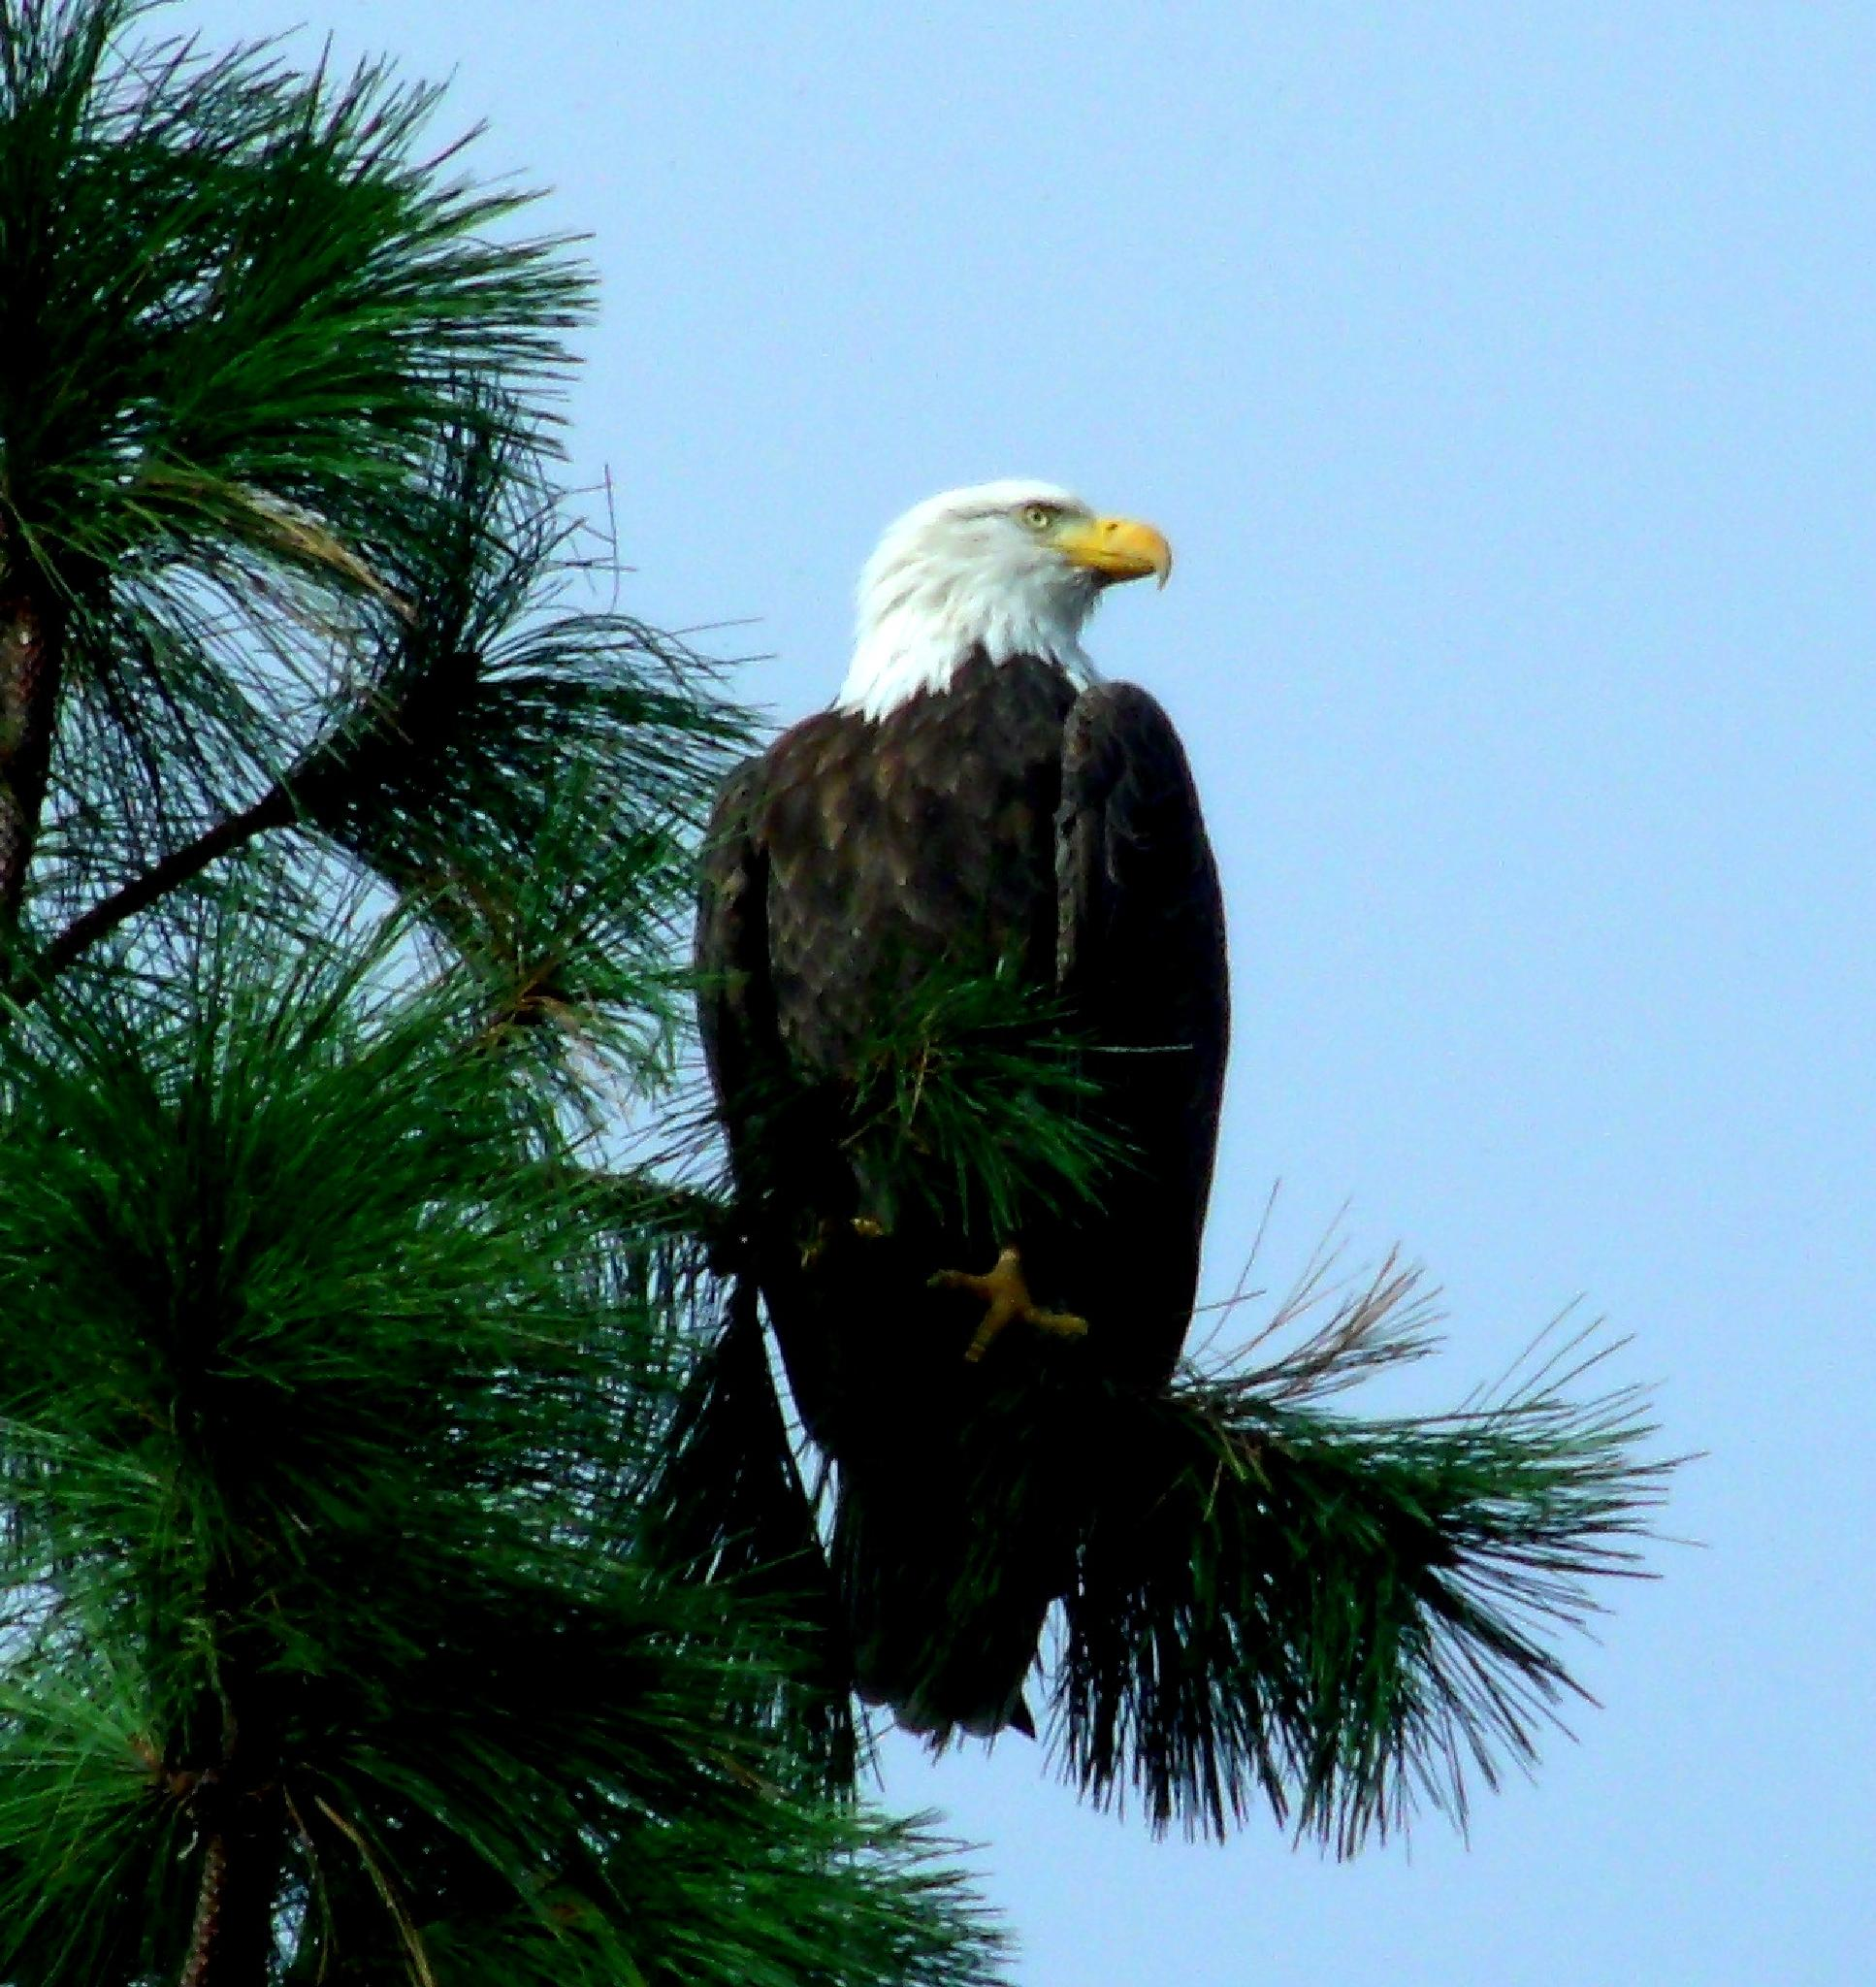 Eagle in my trees by debbie.flores.9085